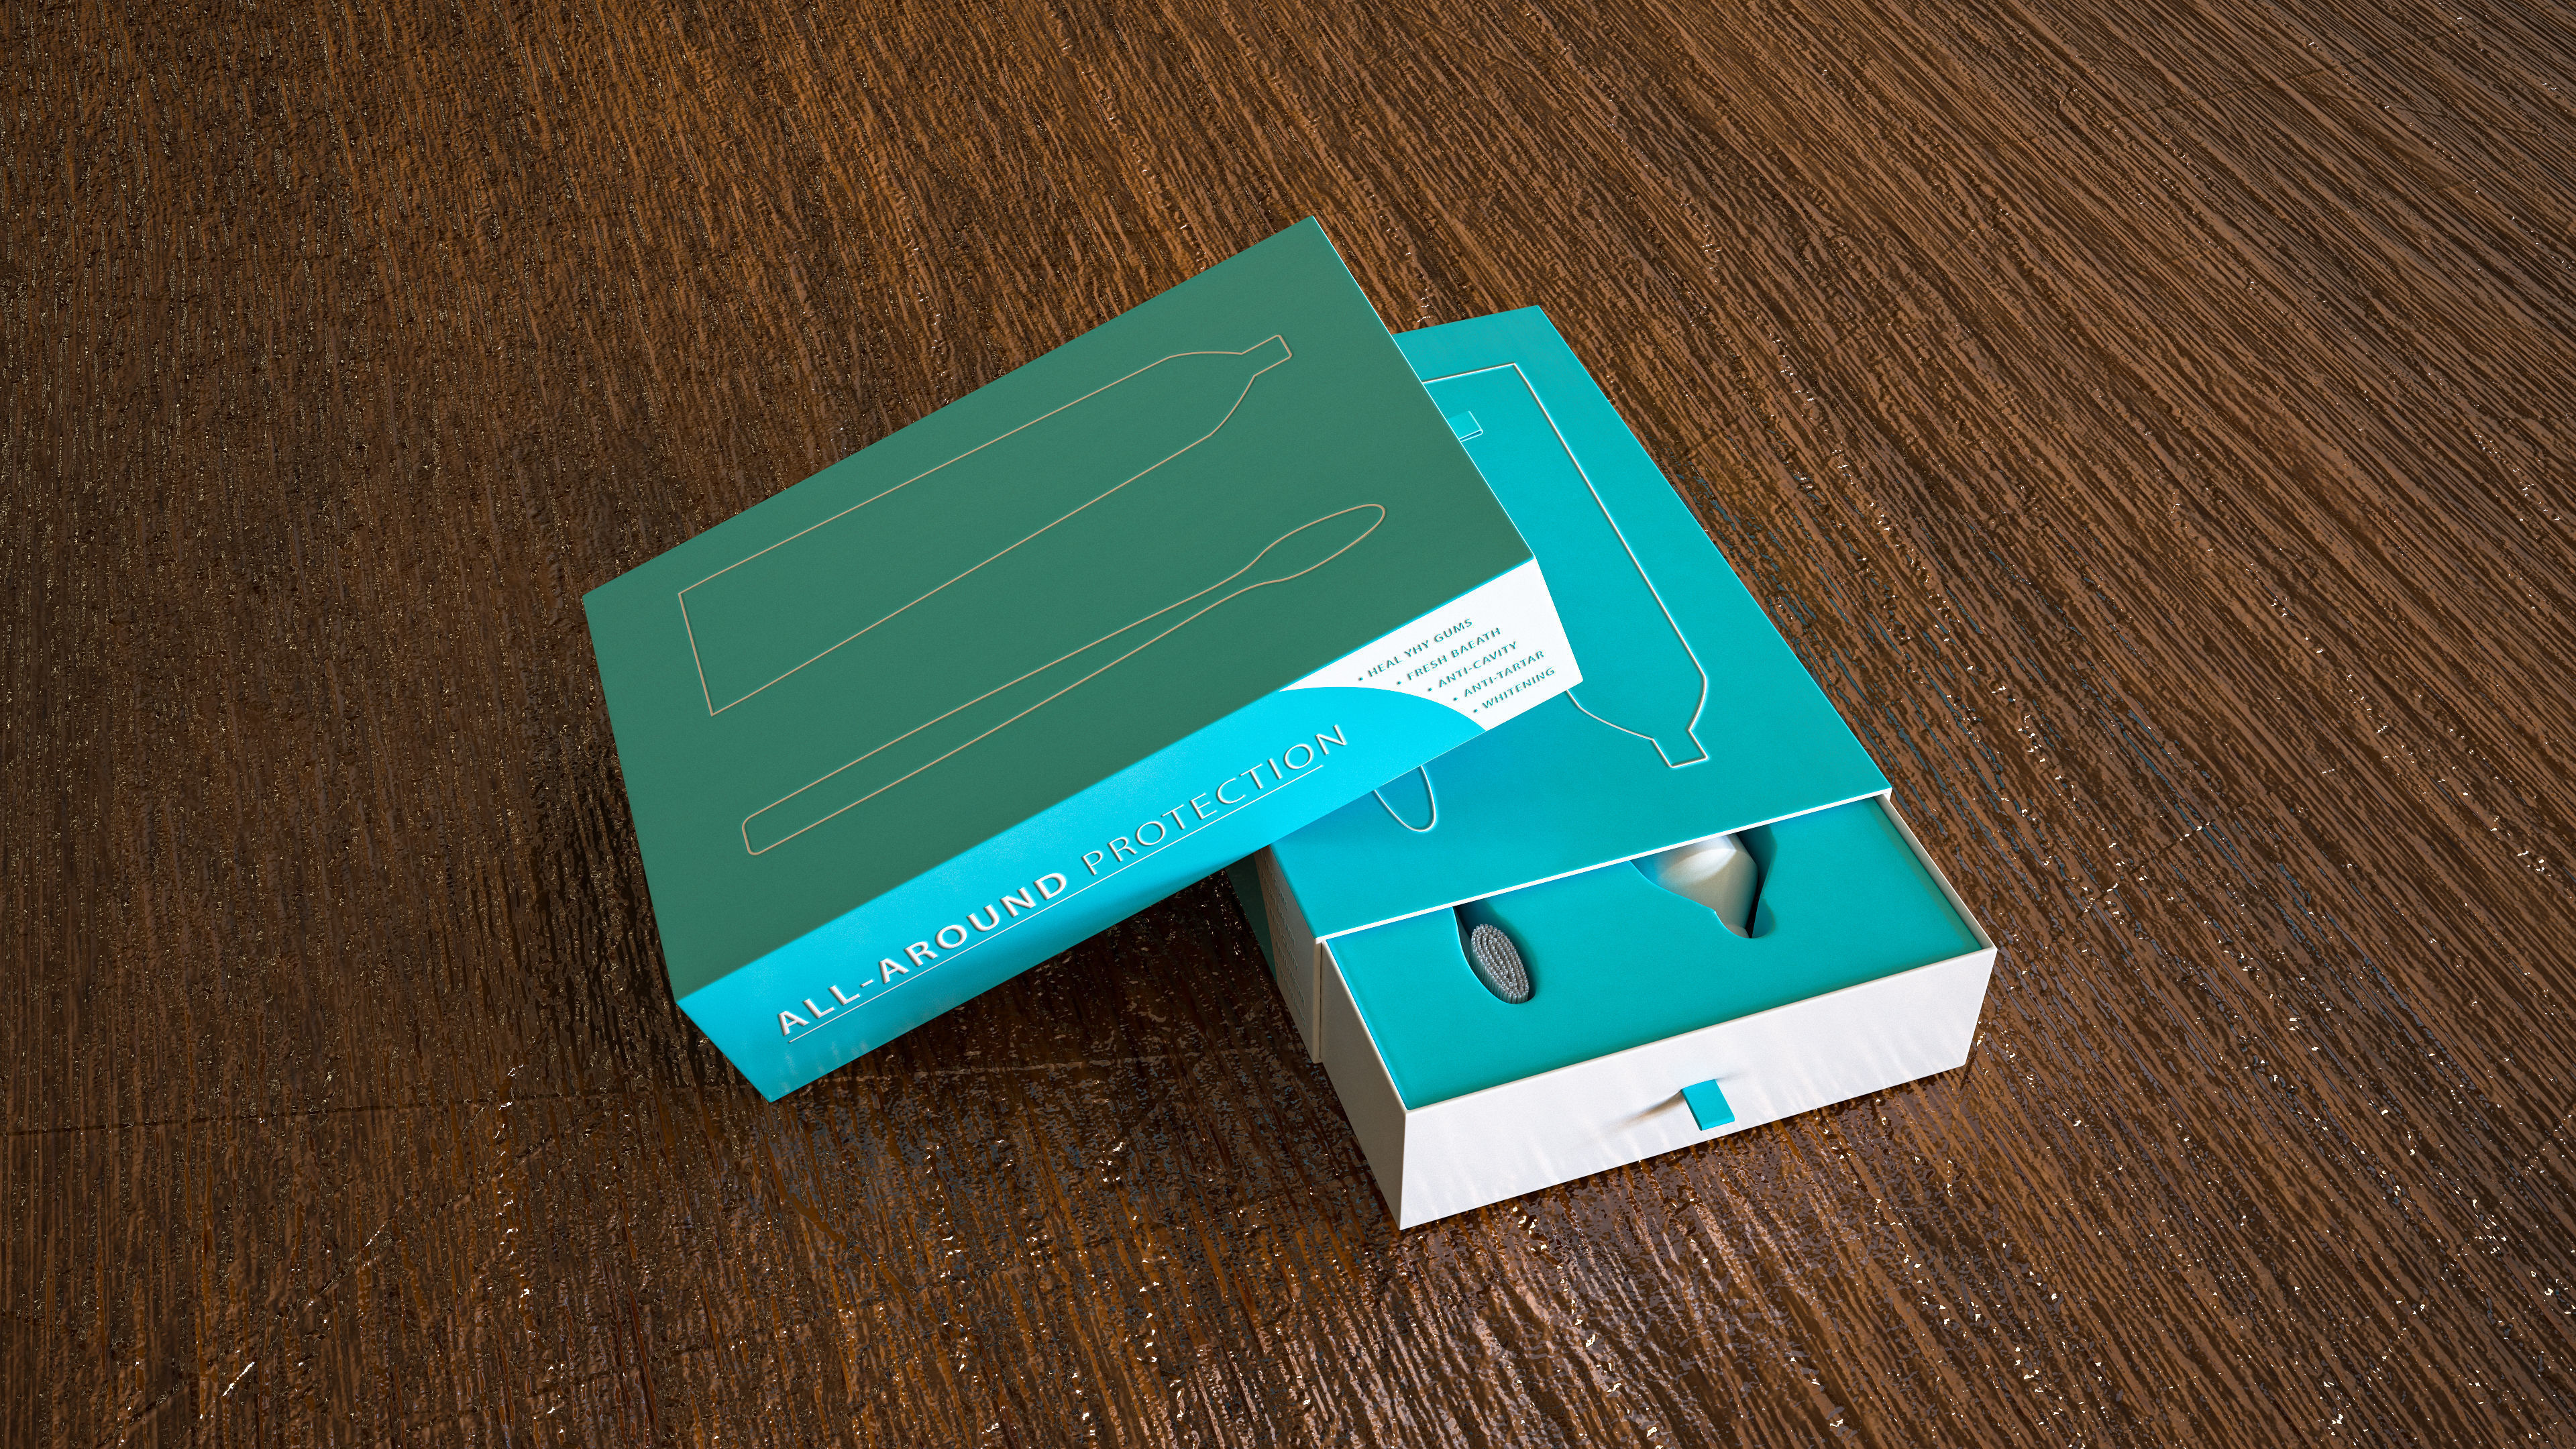 packaging box Toothbrush Toothpaste